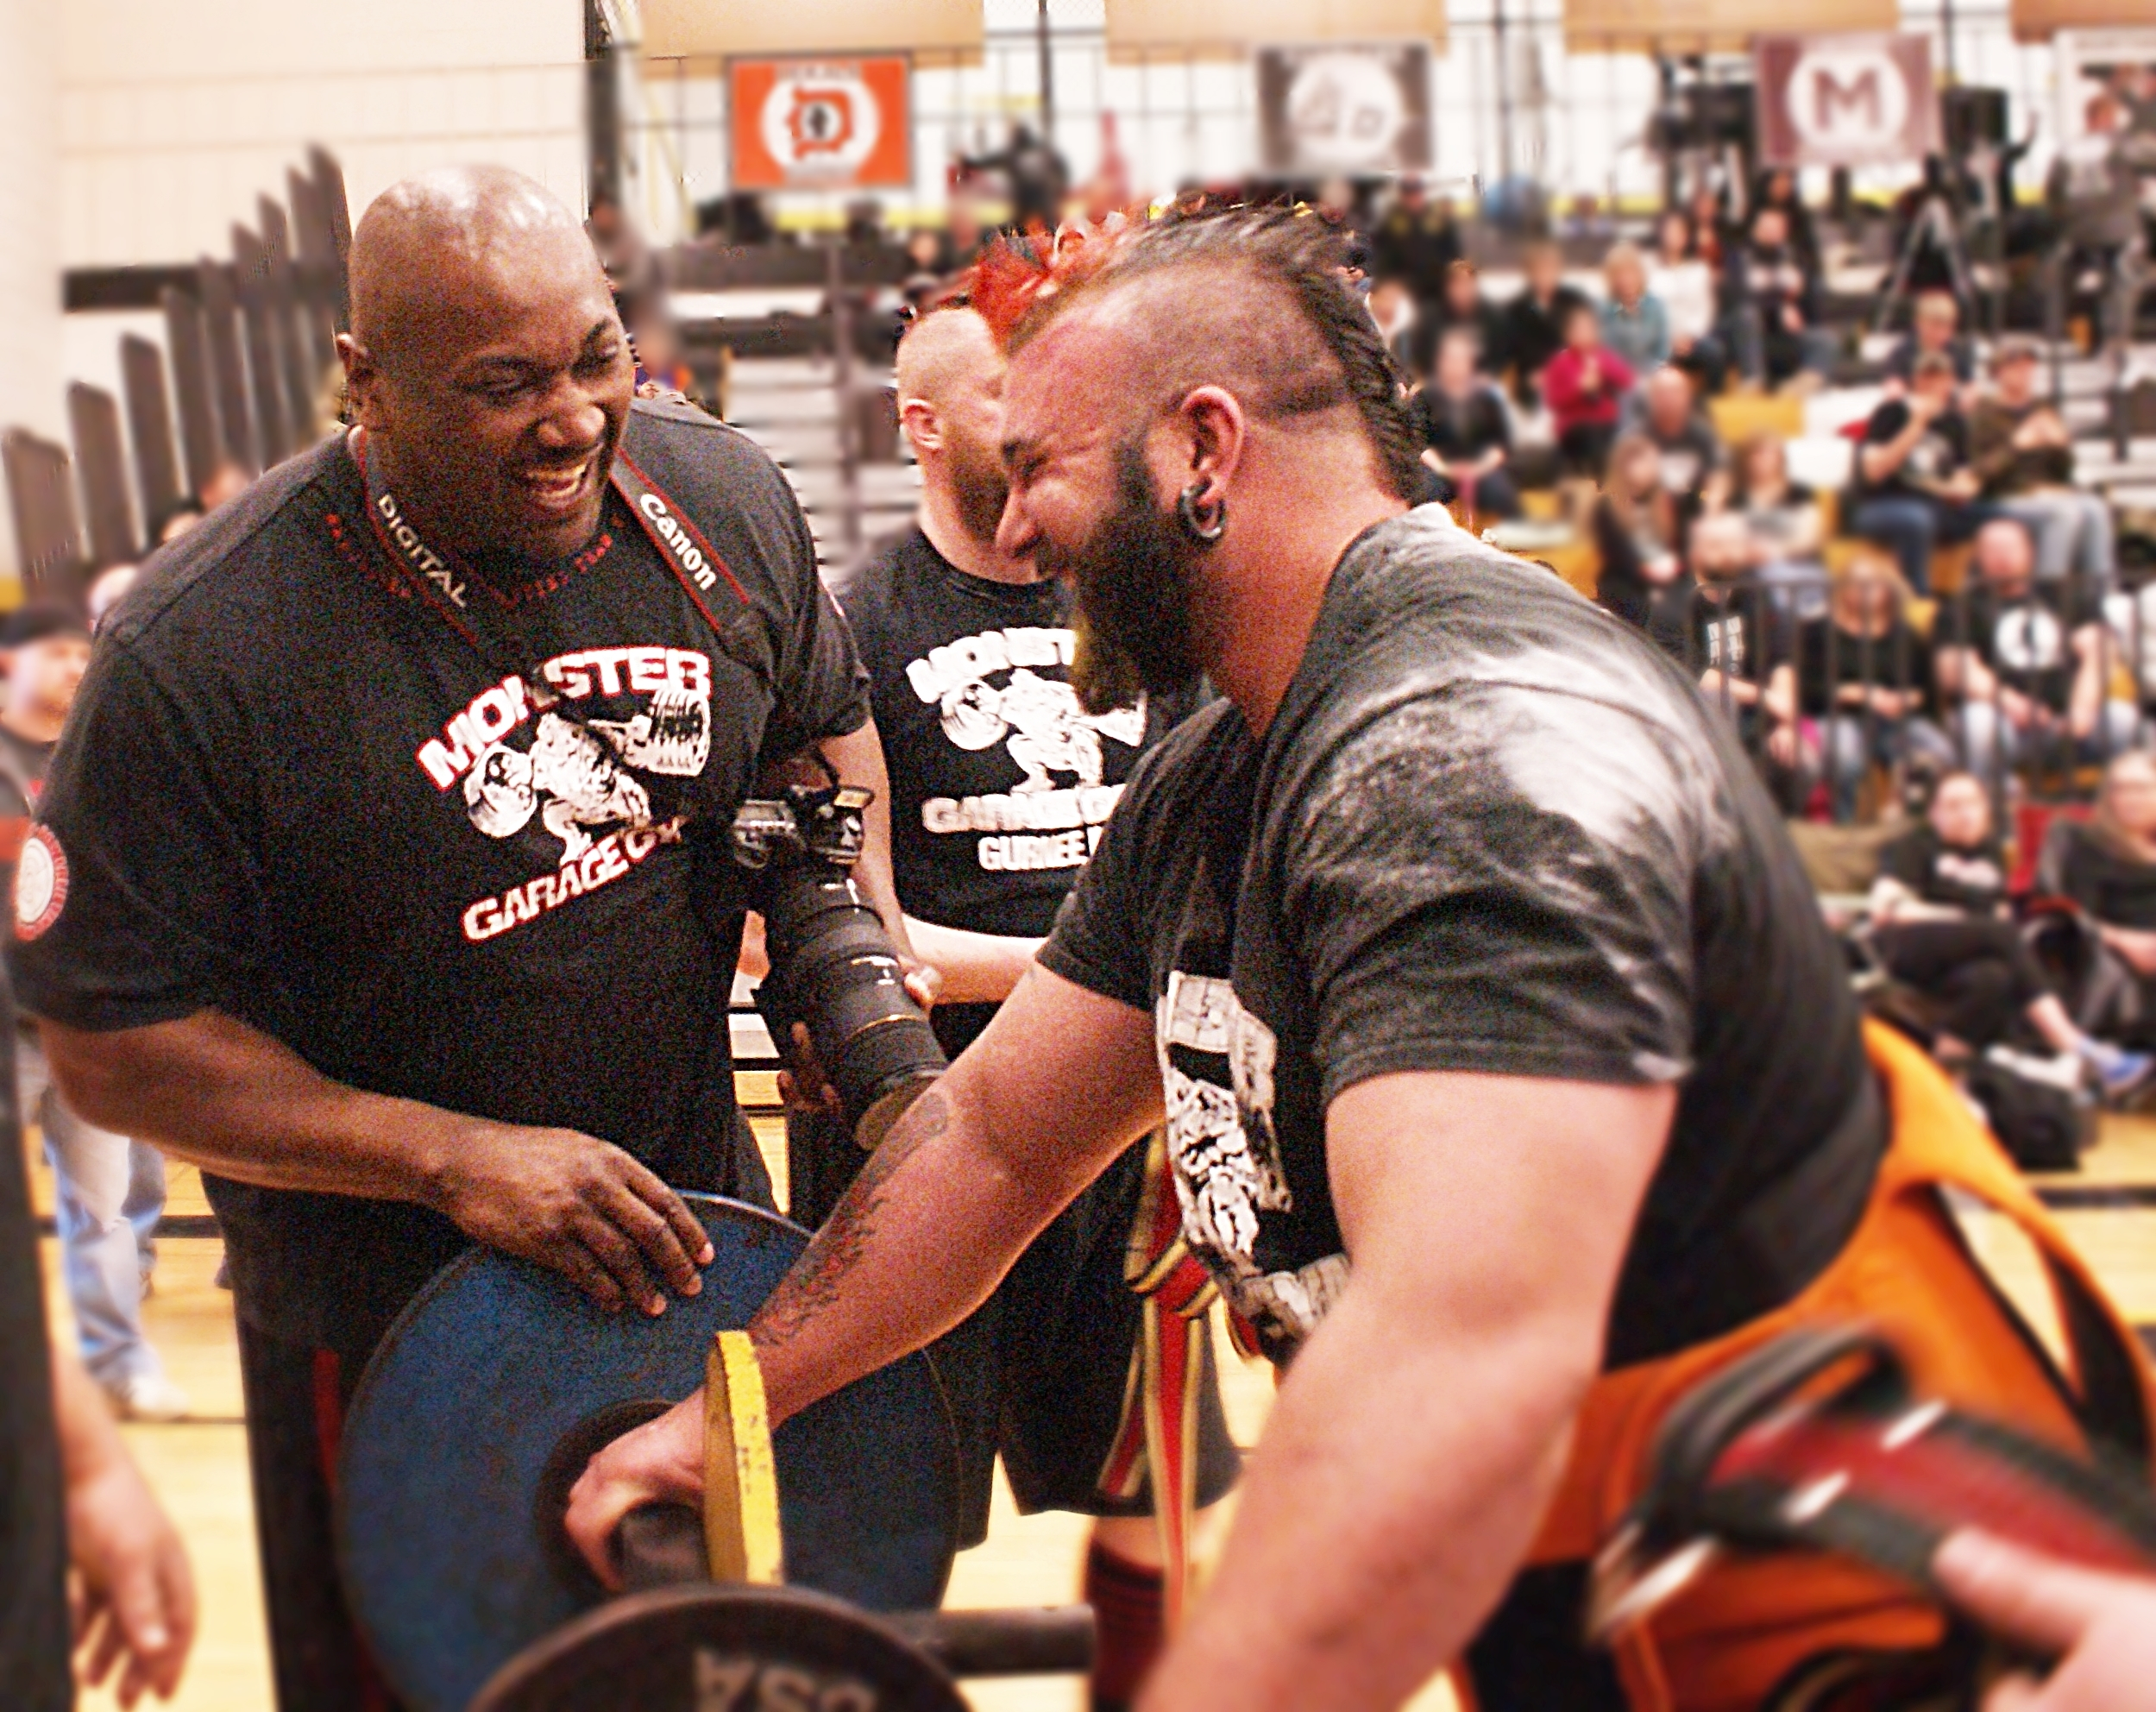 Chris Bartley powerlifting